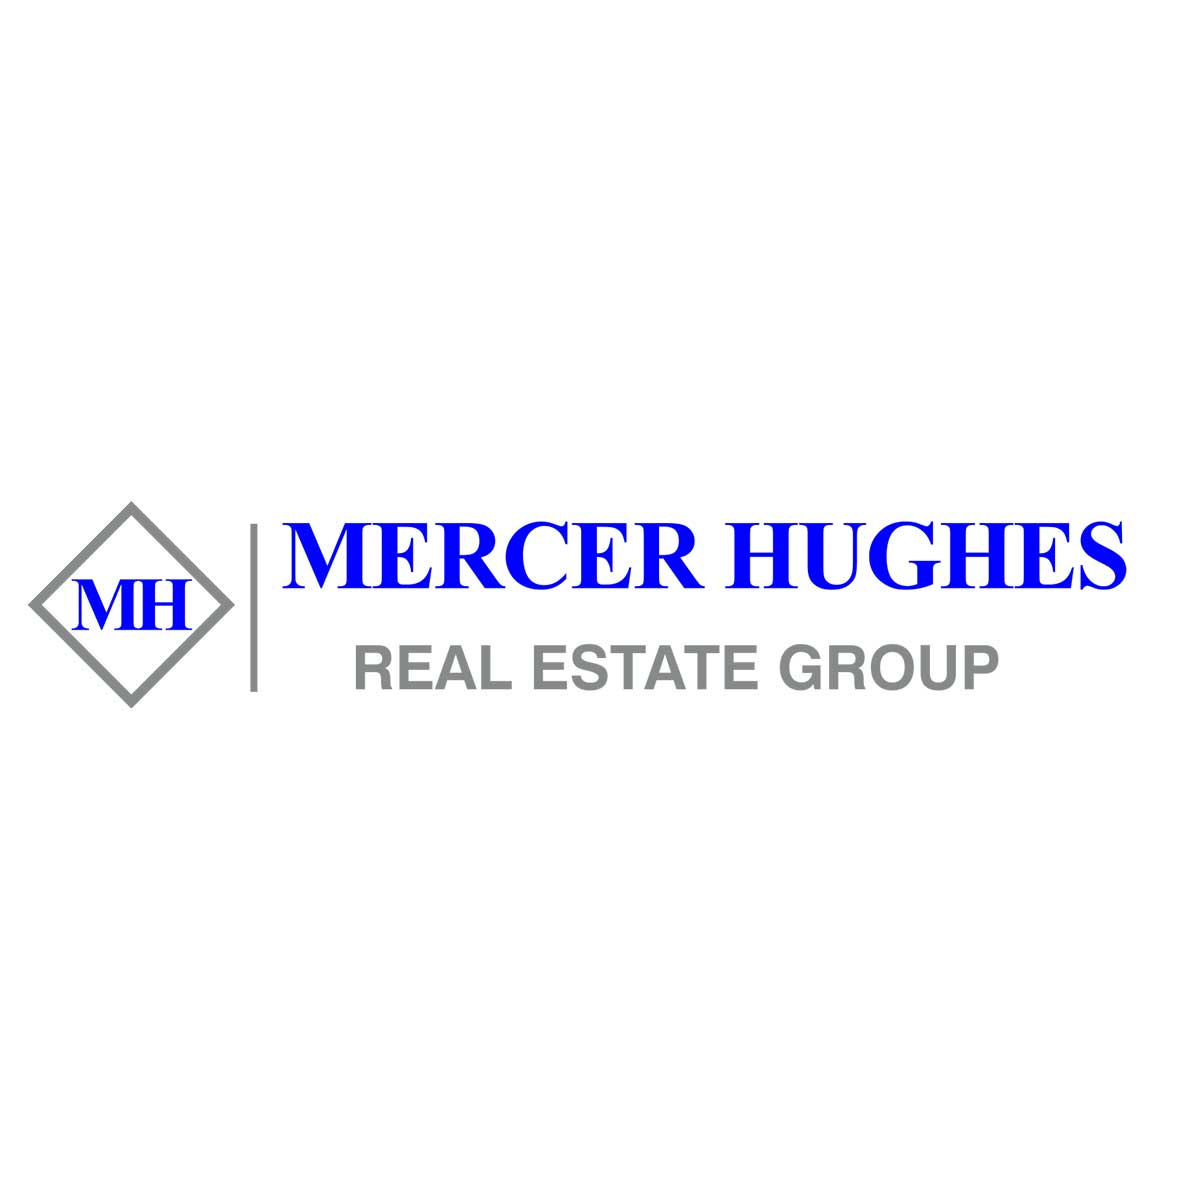 Mercer Hughes Real Estate Property Management in Valdosta